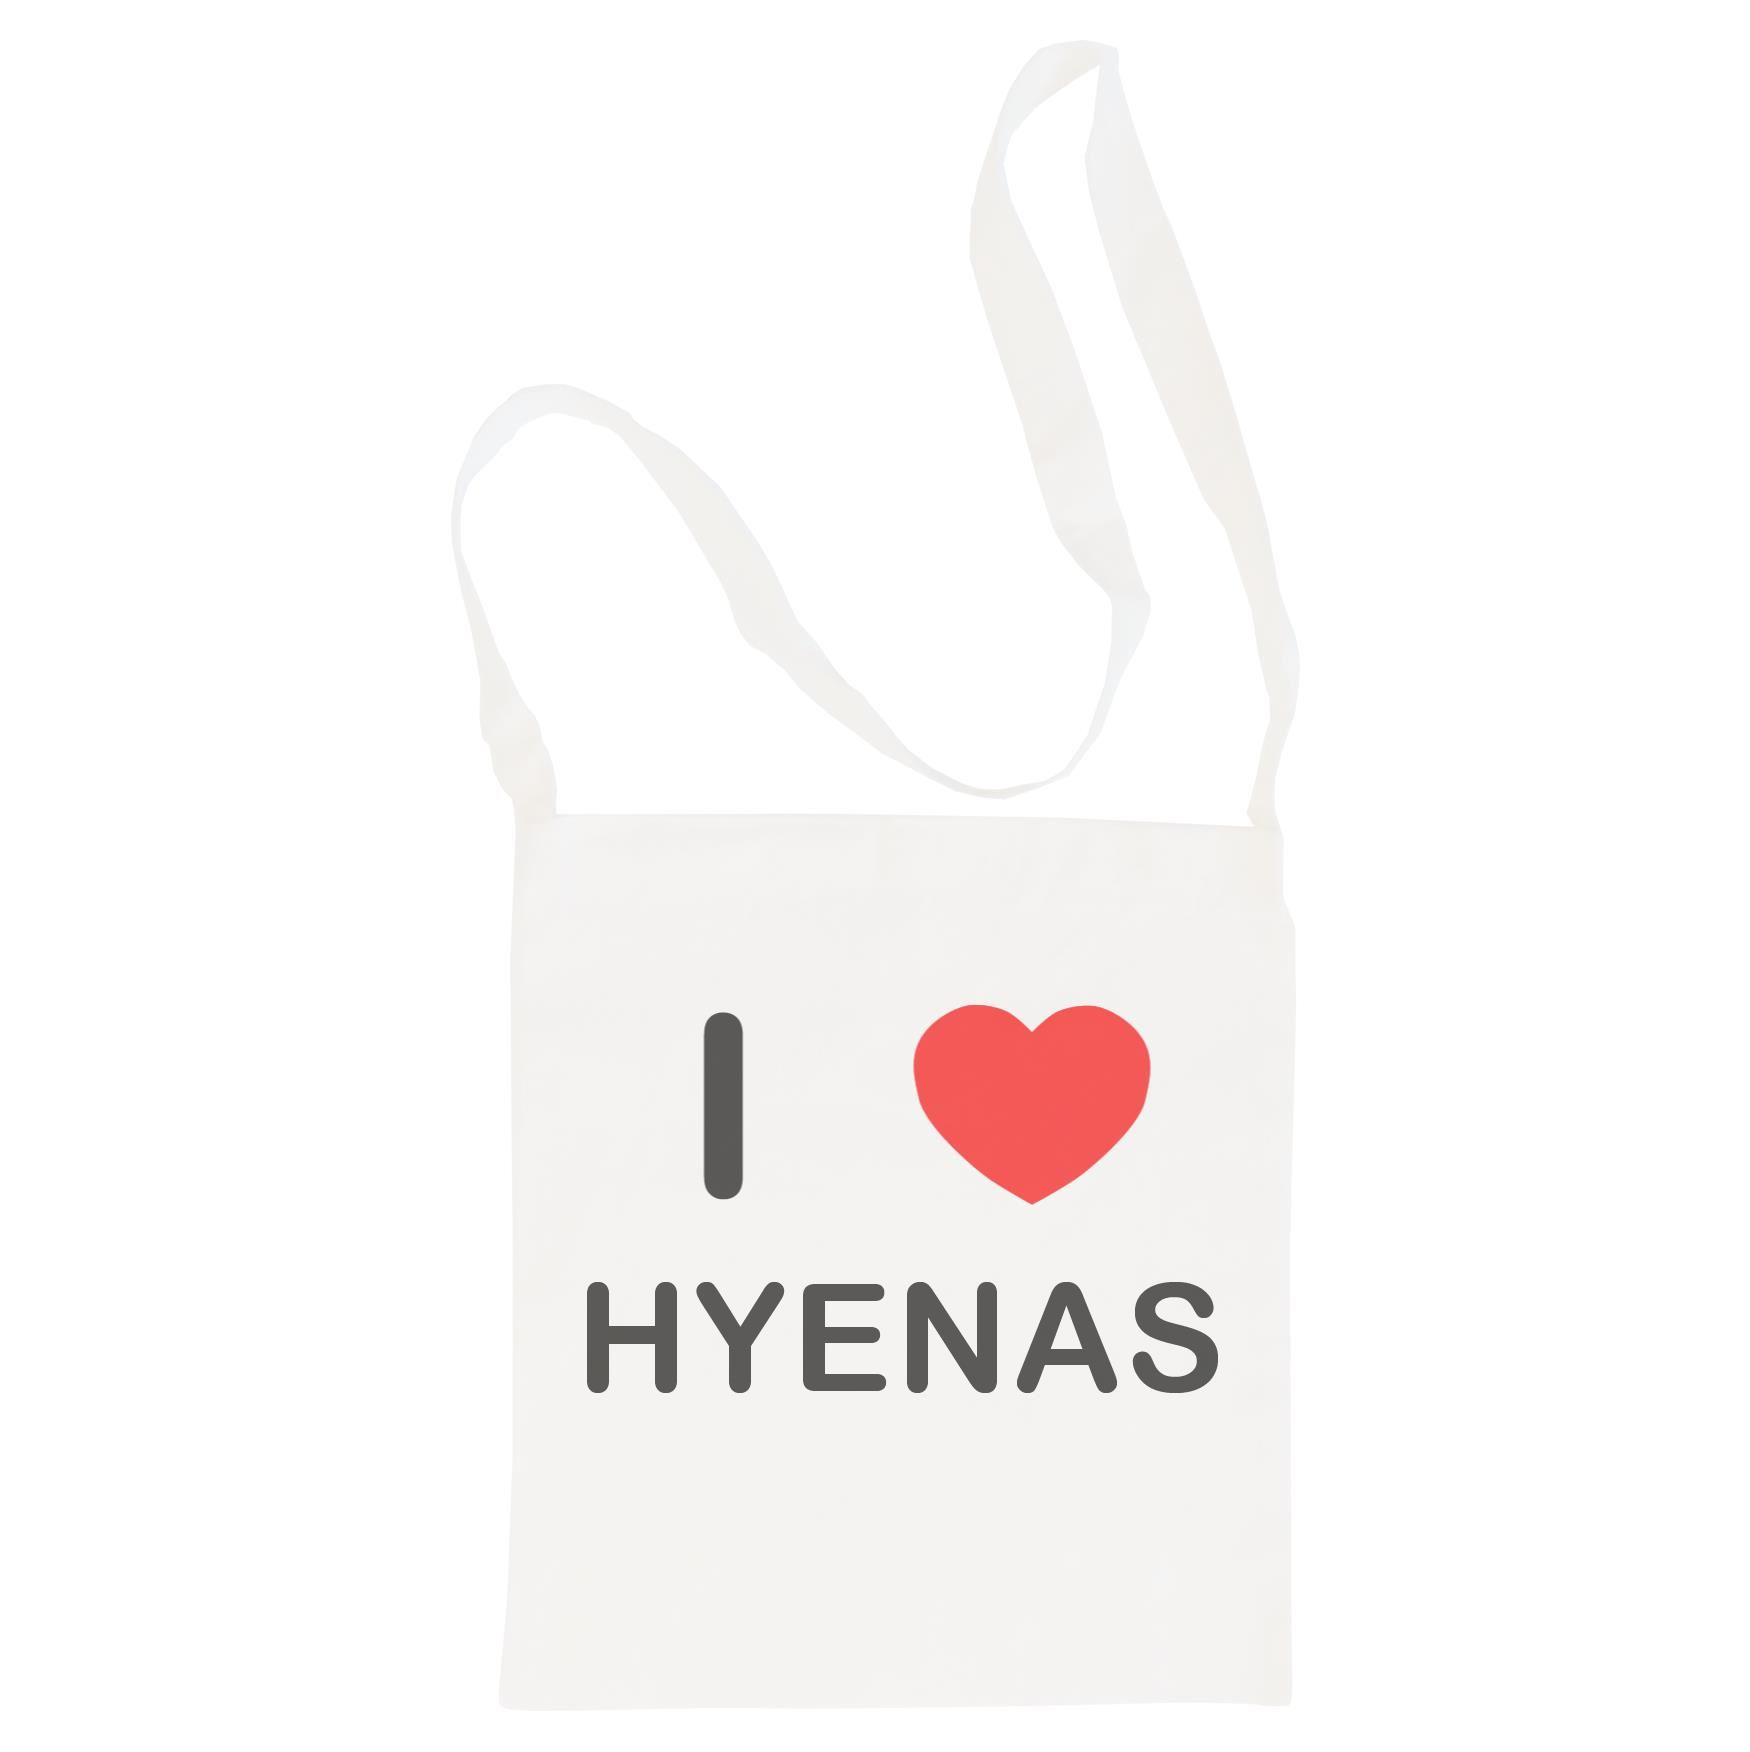 I Love Hyenas - Cotton Bag | Size choice Tote, Shopper or Sling